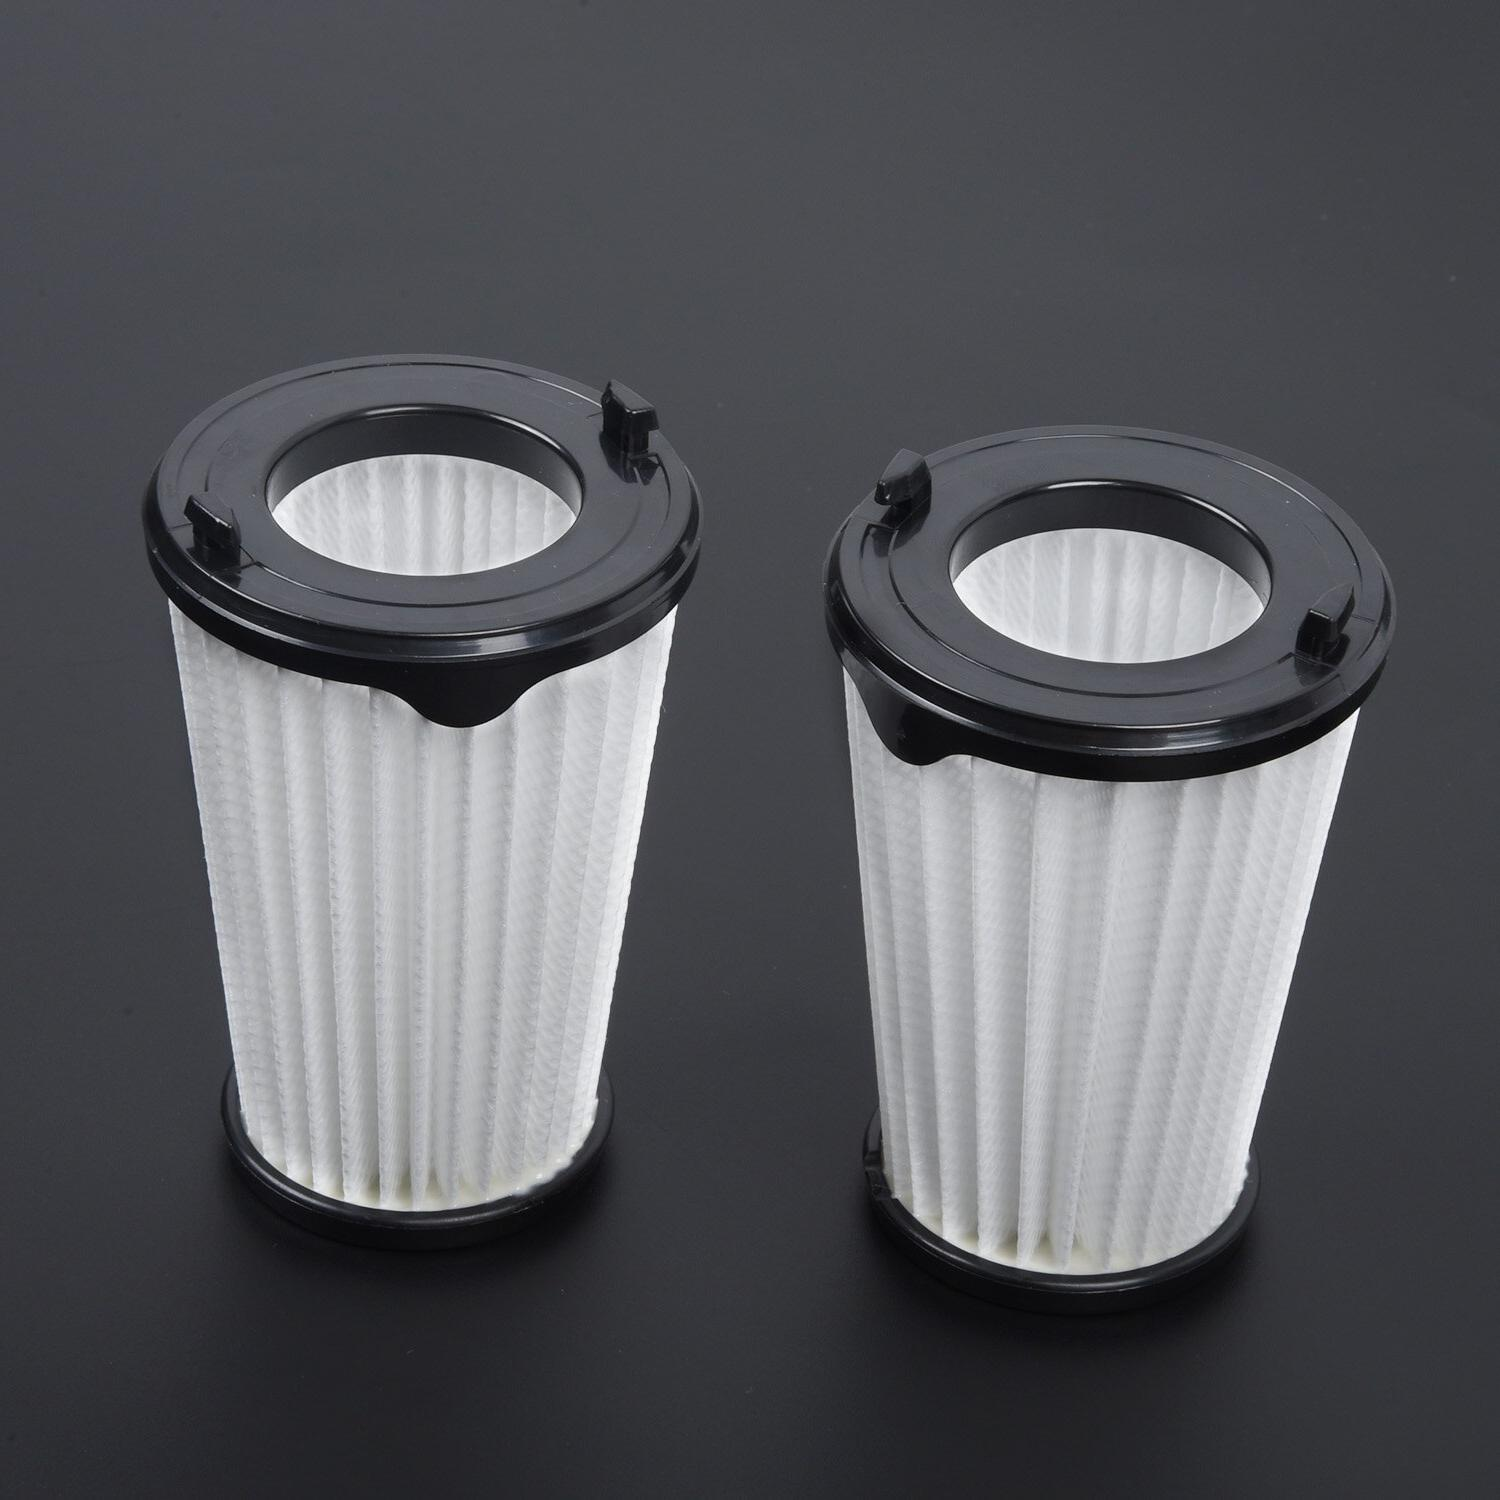 2pcs For AEF150 9001683755 AEF150 for AEF150 <font><b>Accessories</b></font> 2019